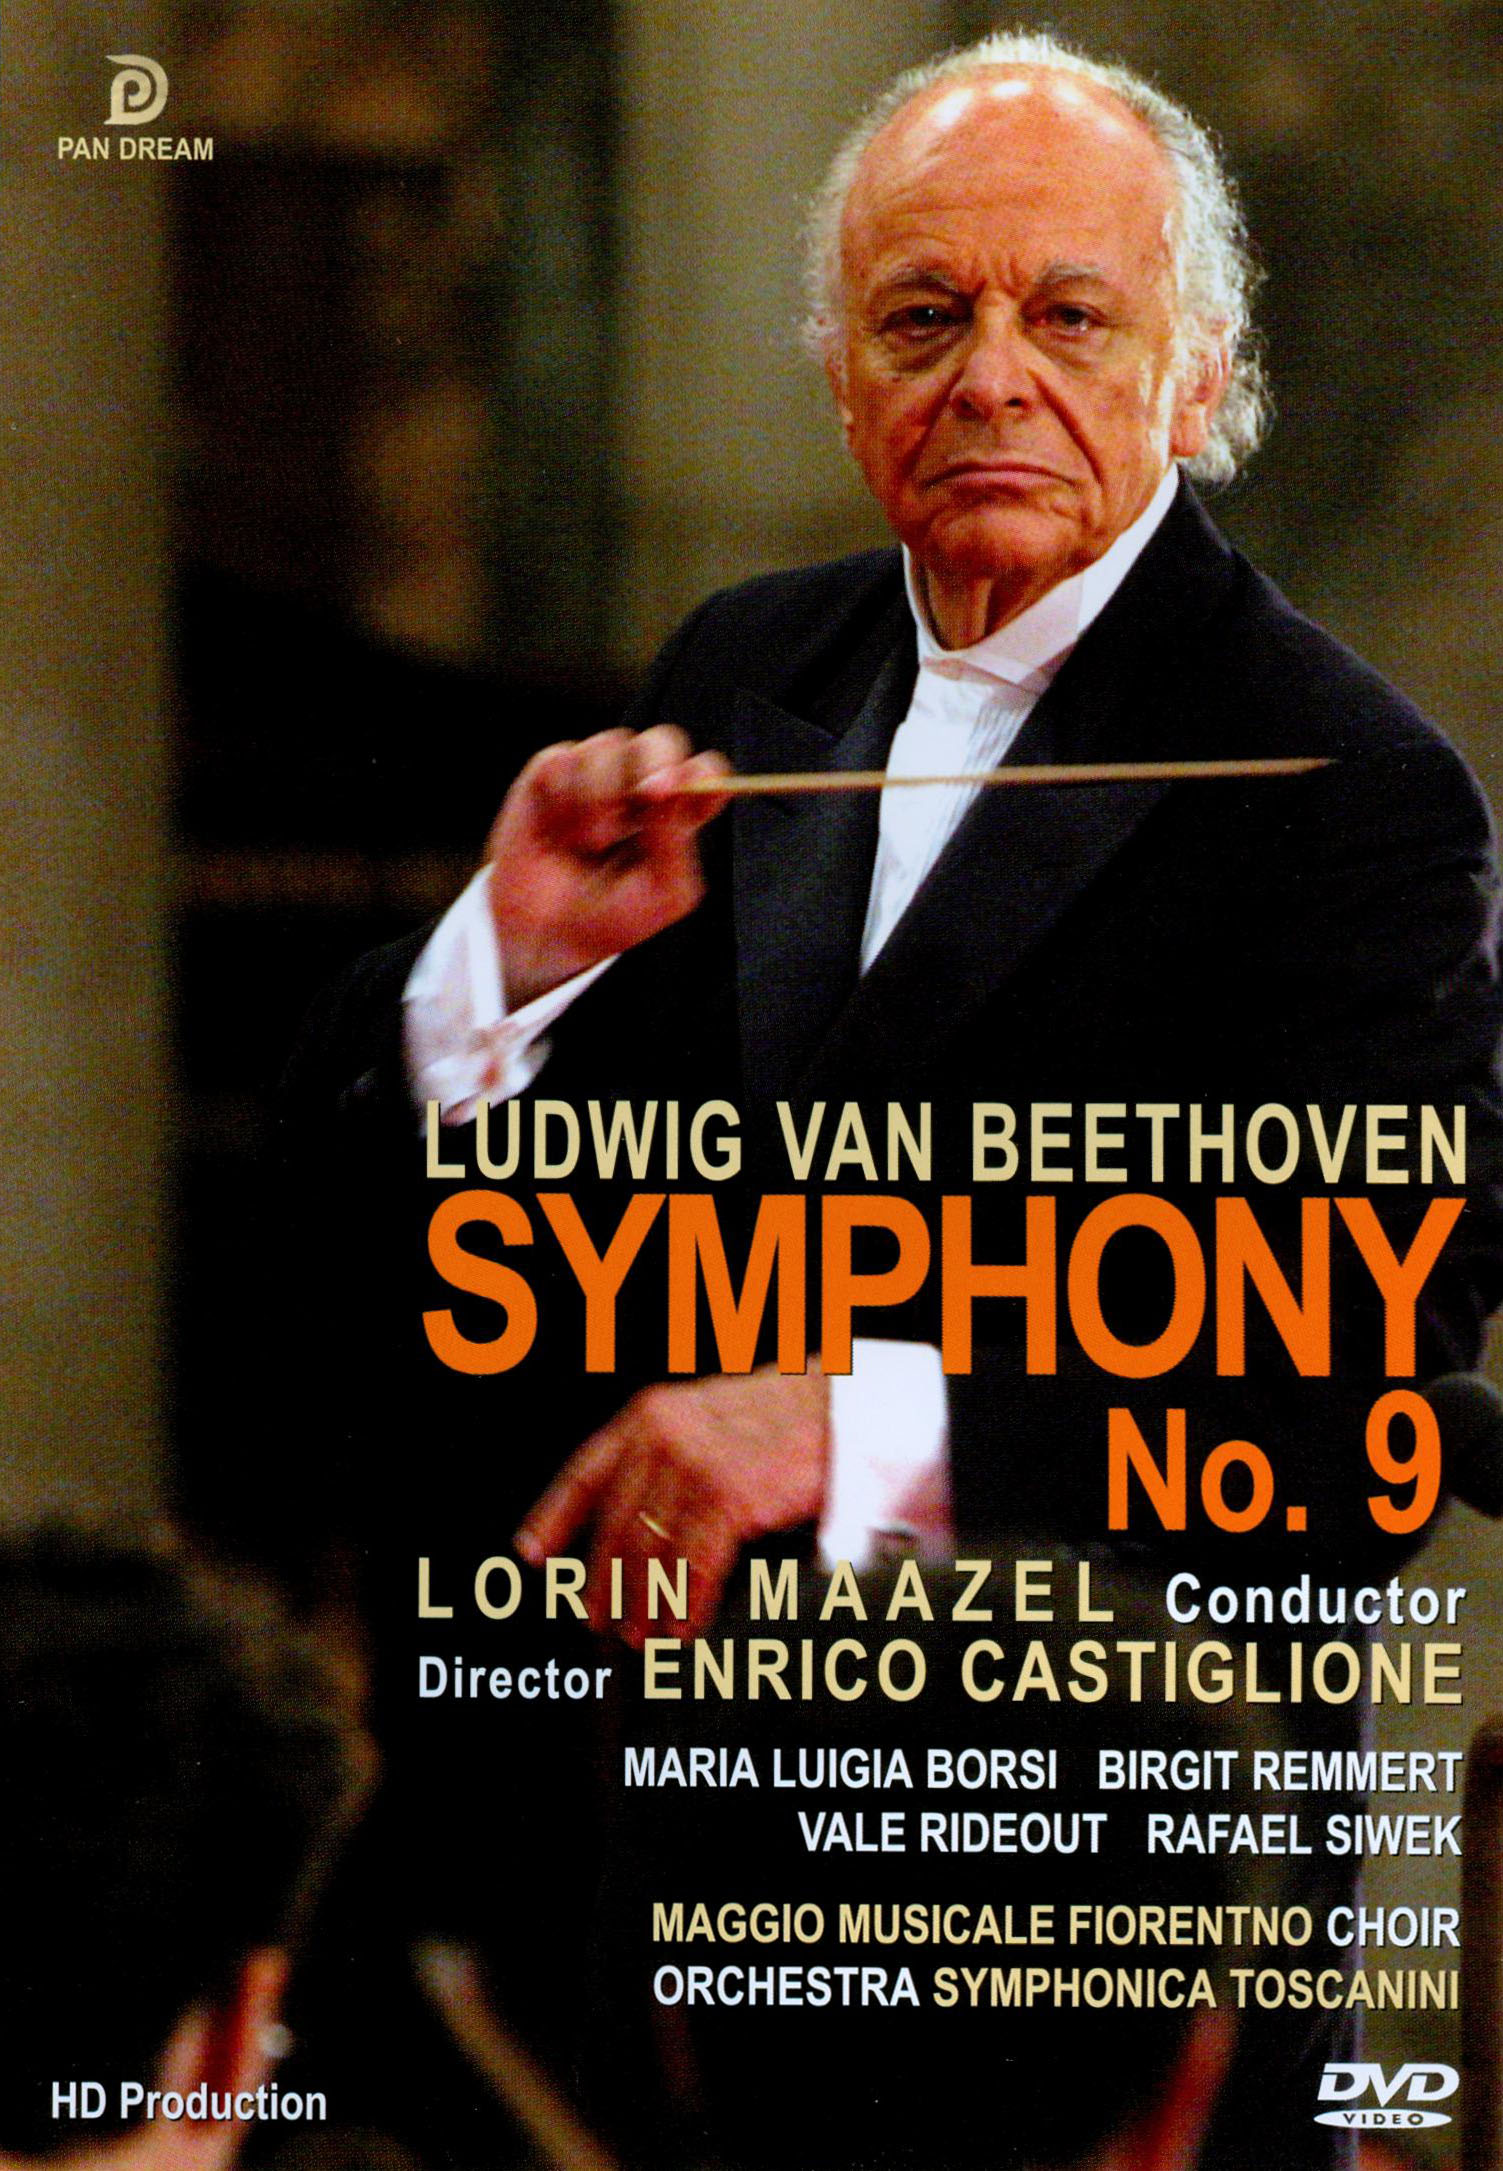 Lorin Maazel: Beethoven - Symphony No. 9 Choral at Vatican City